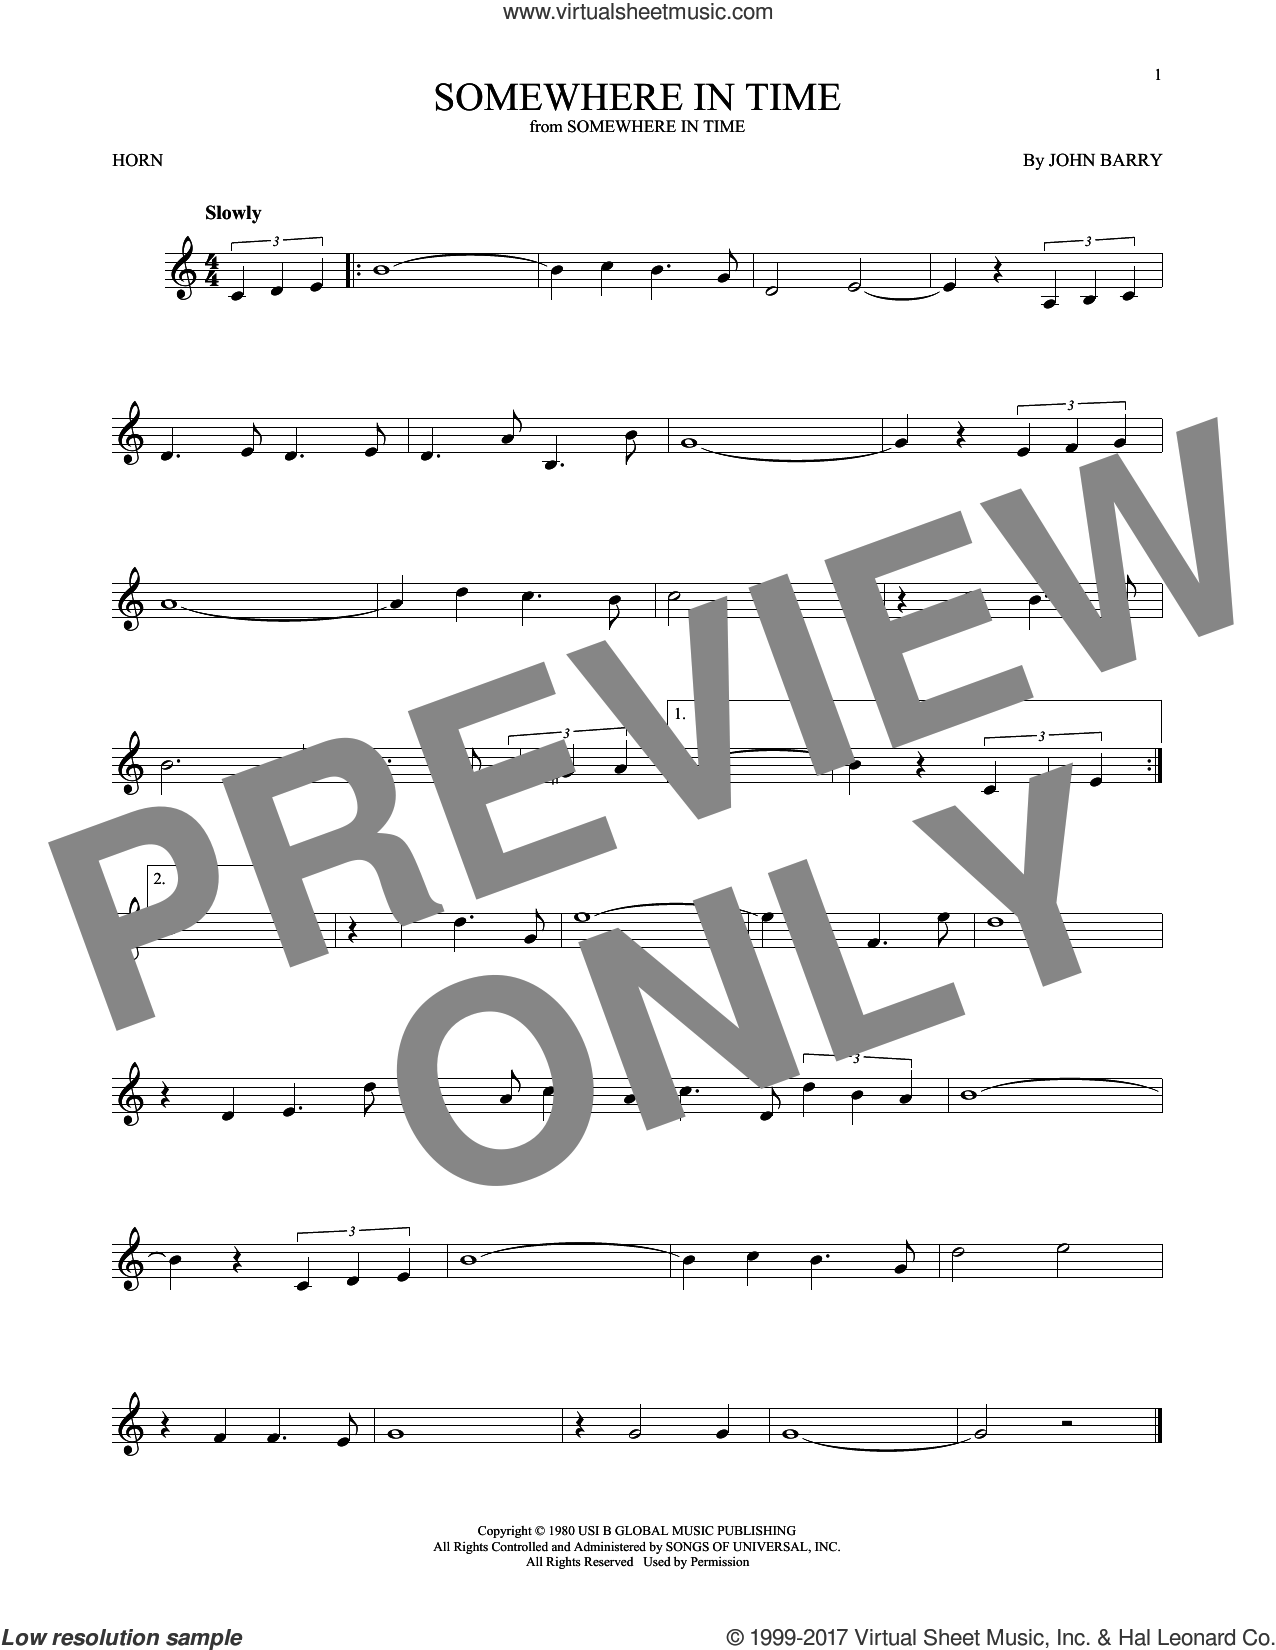 Somewhere In Time sheet music for horn solo by John Barry. Score Image Preview.